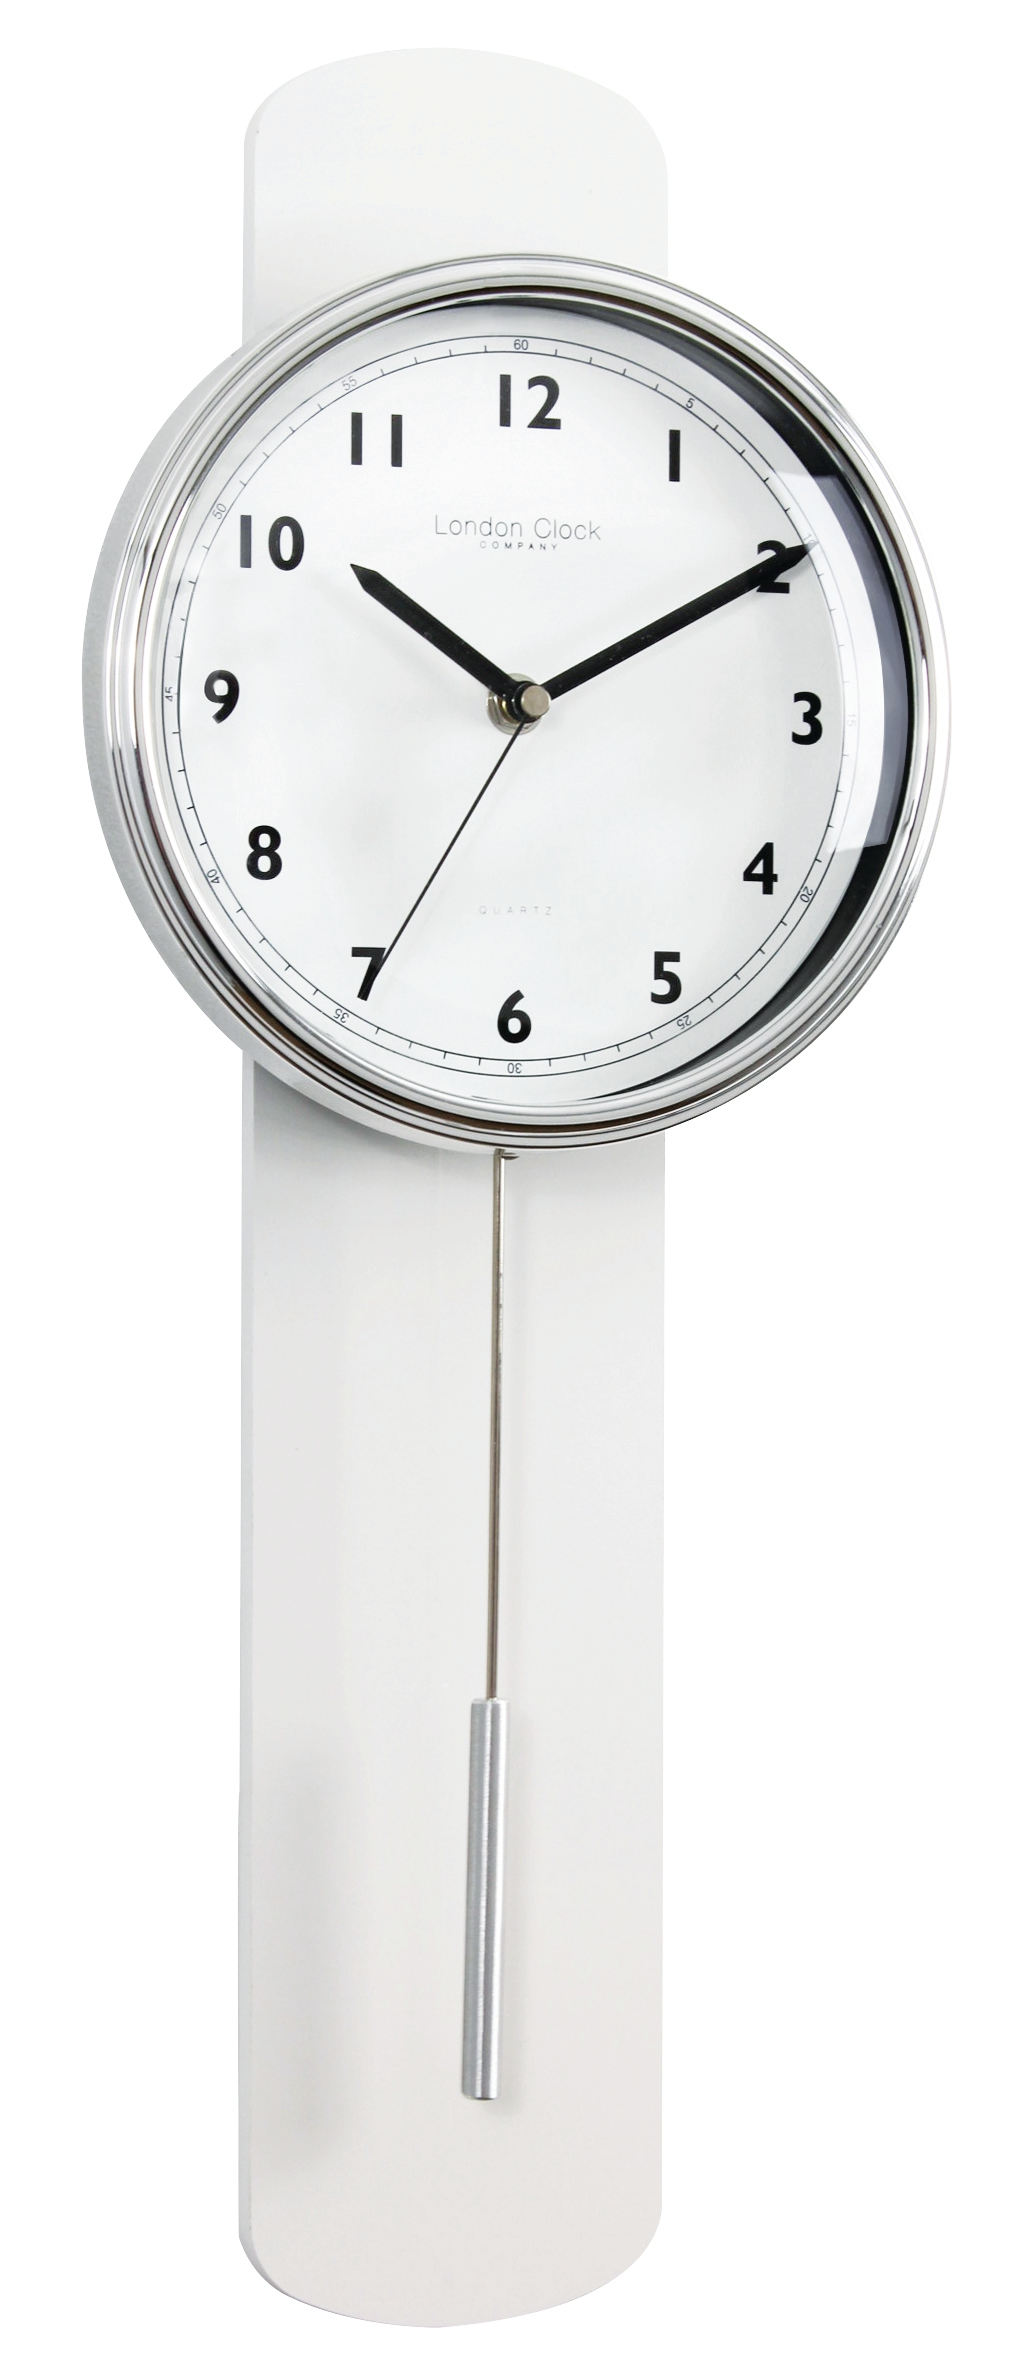 London Clock Company White Finish Contemporary Pendulum Wall Clock Discount Homeware And Giftware